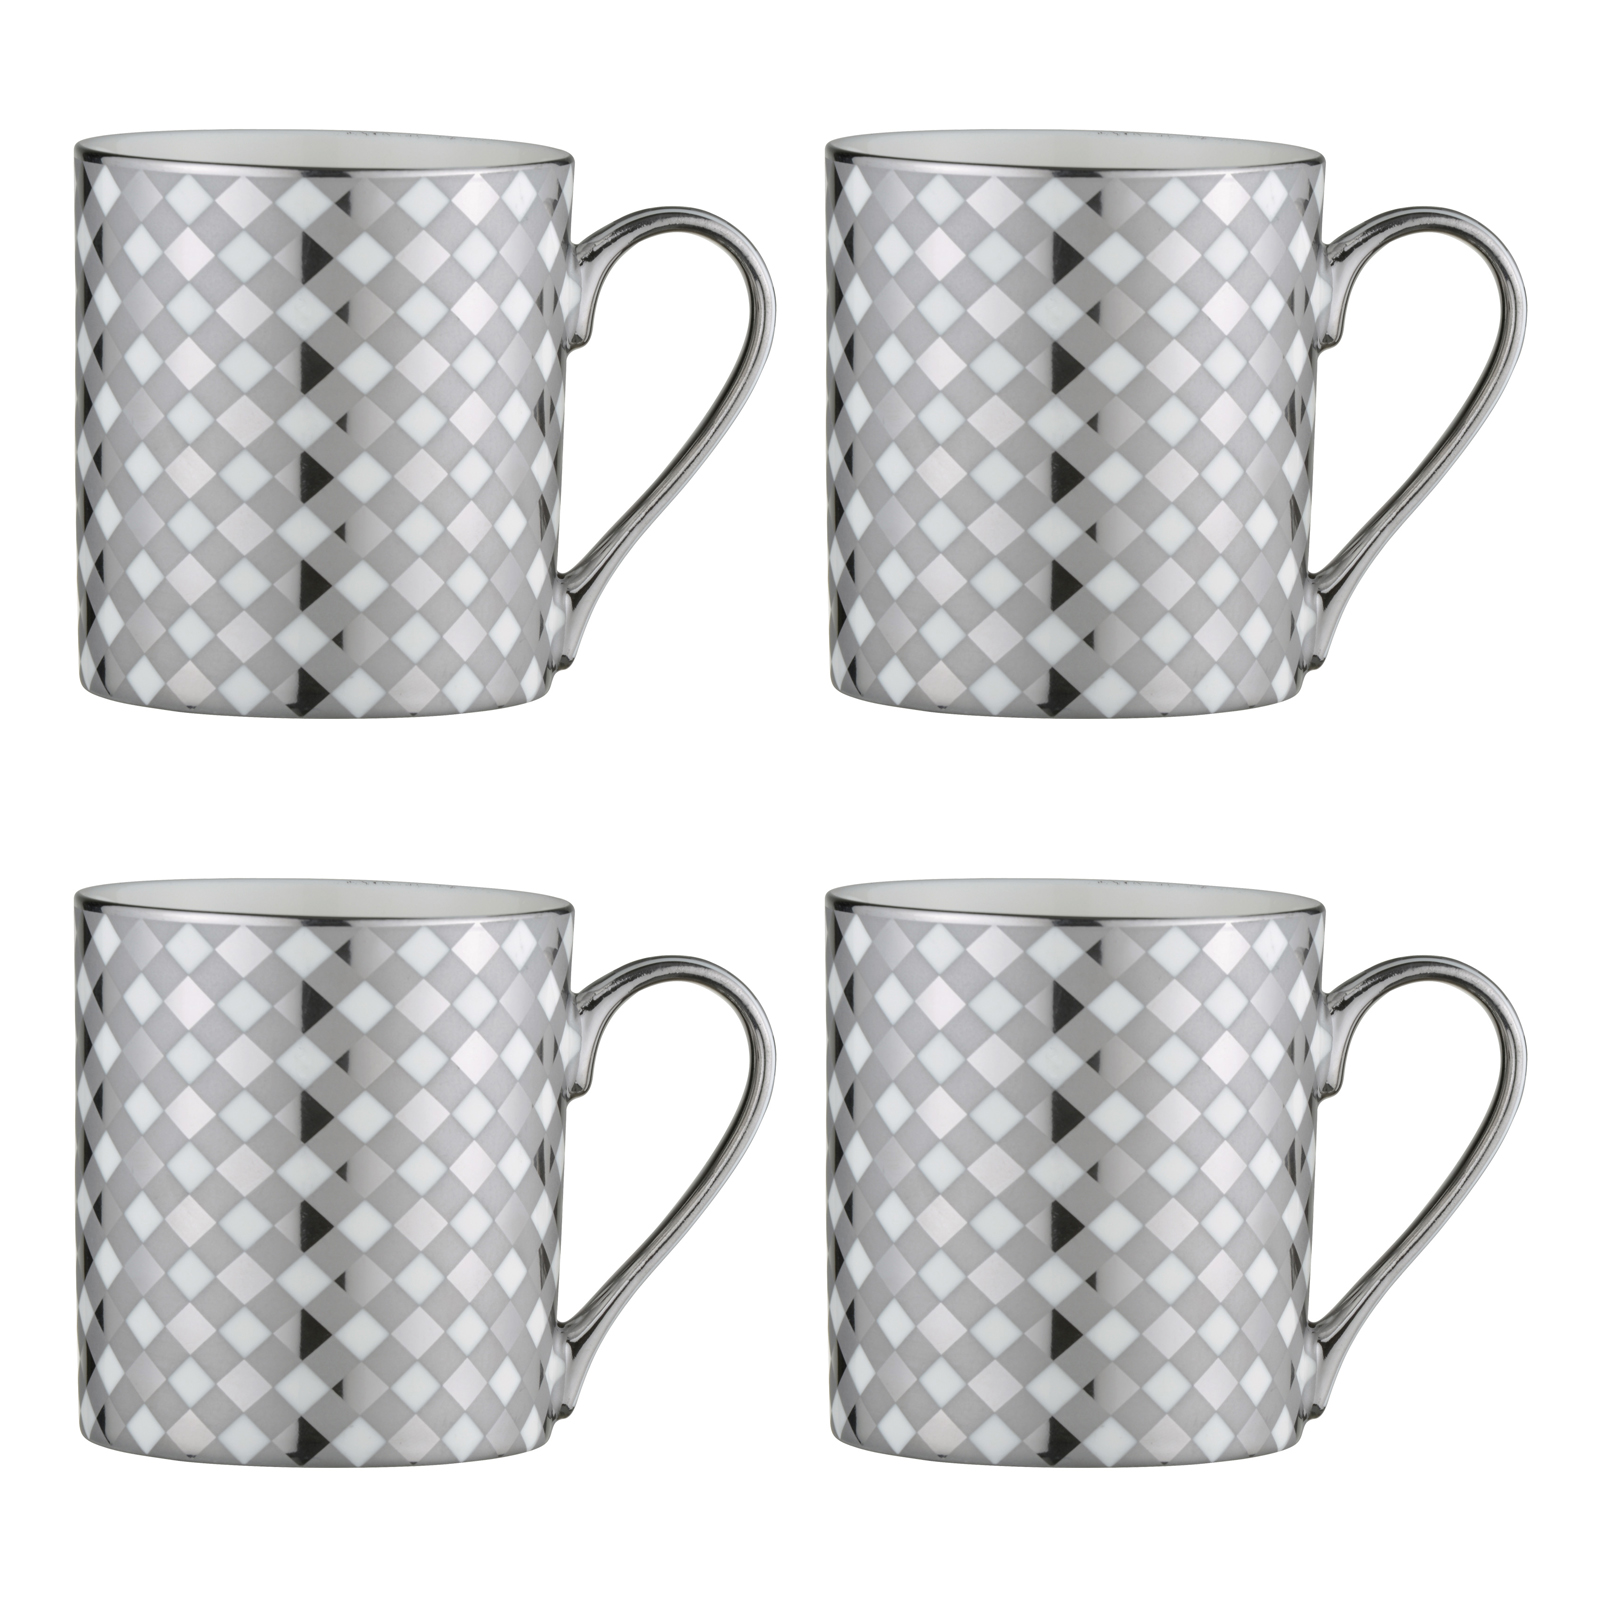 Set of 4 Tartan Mugs Platinum by BIA